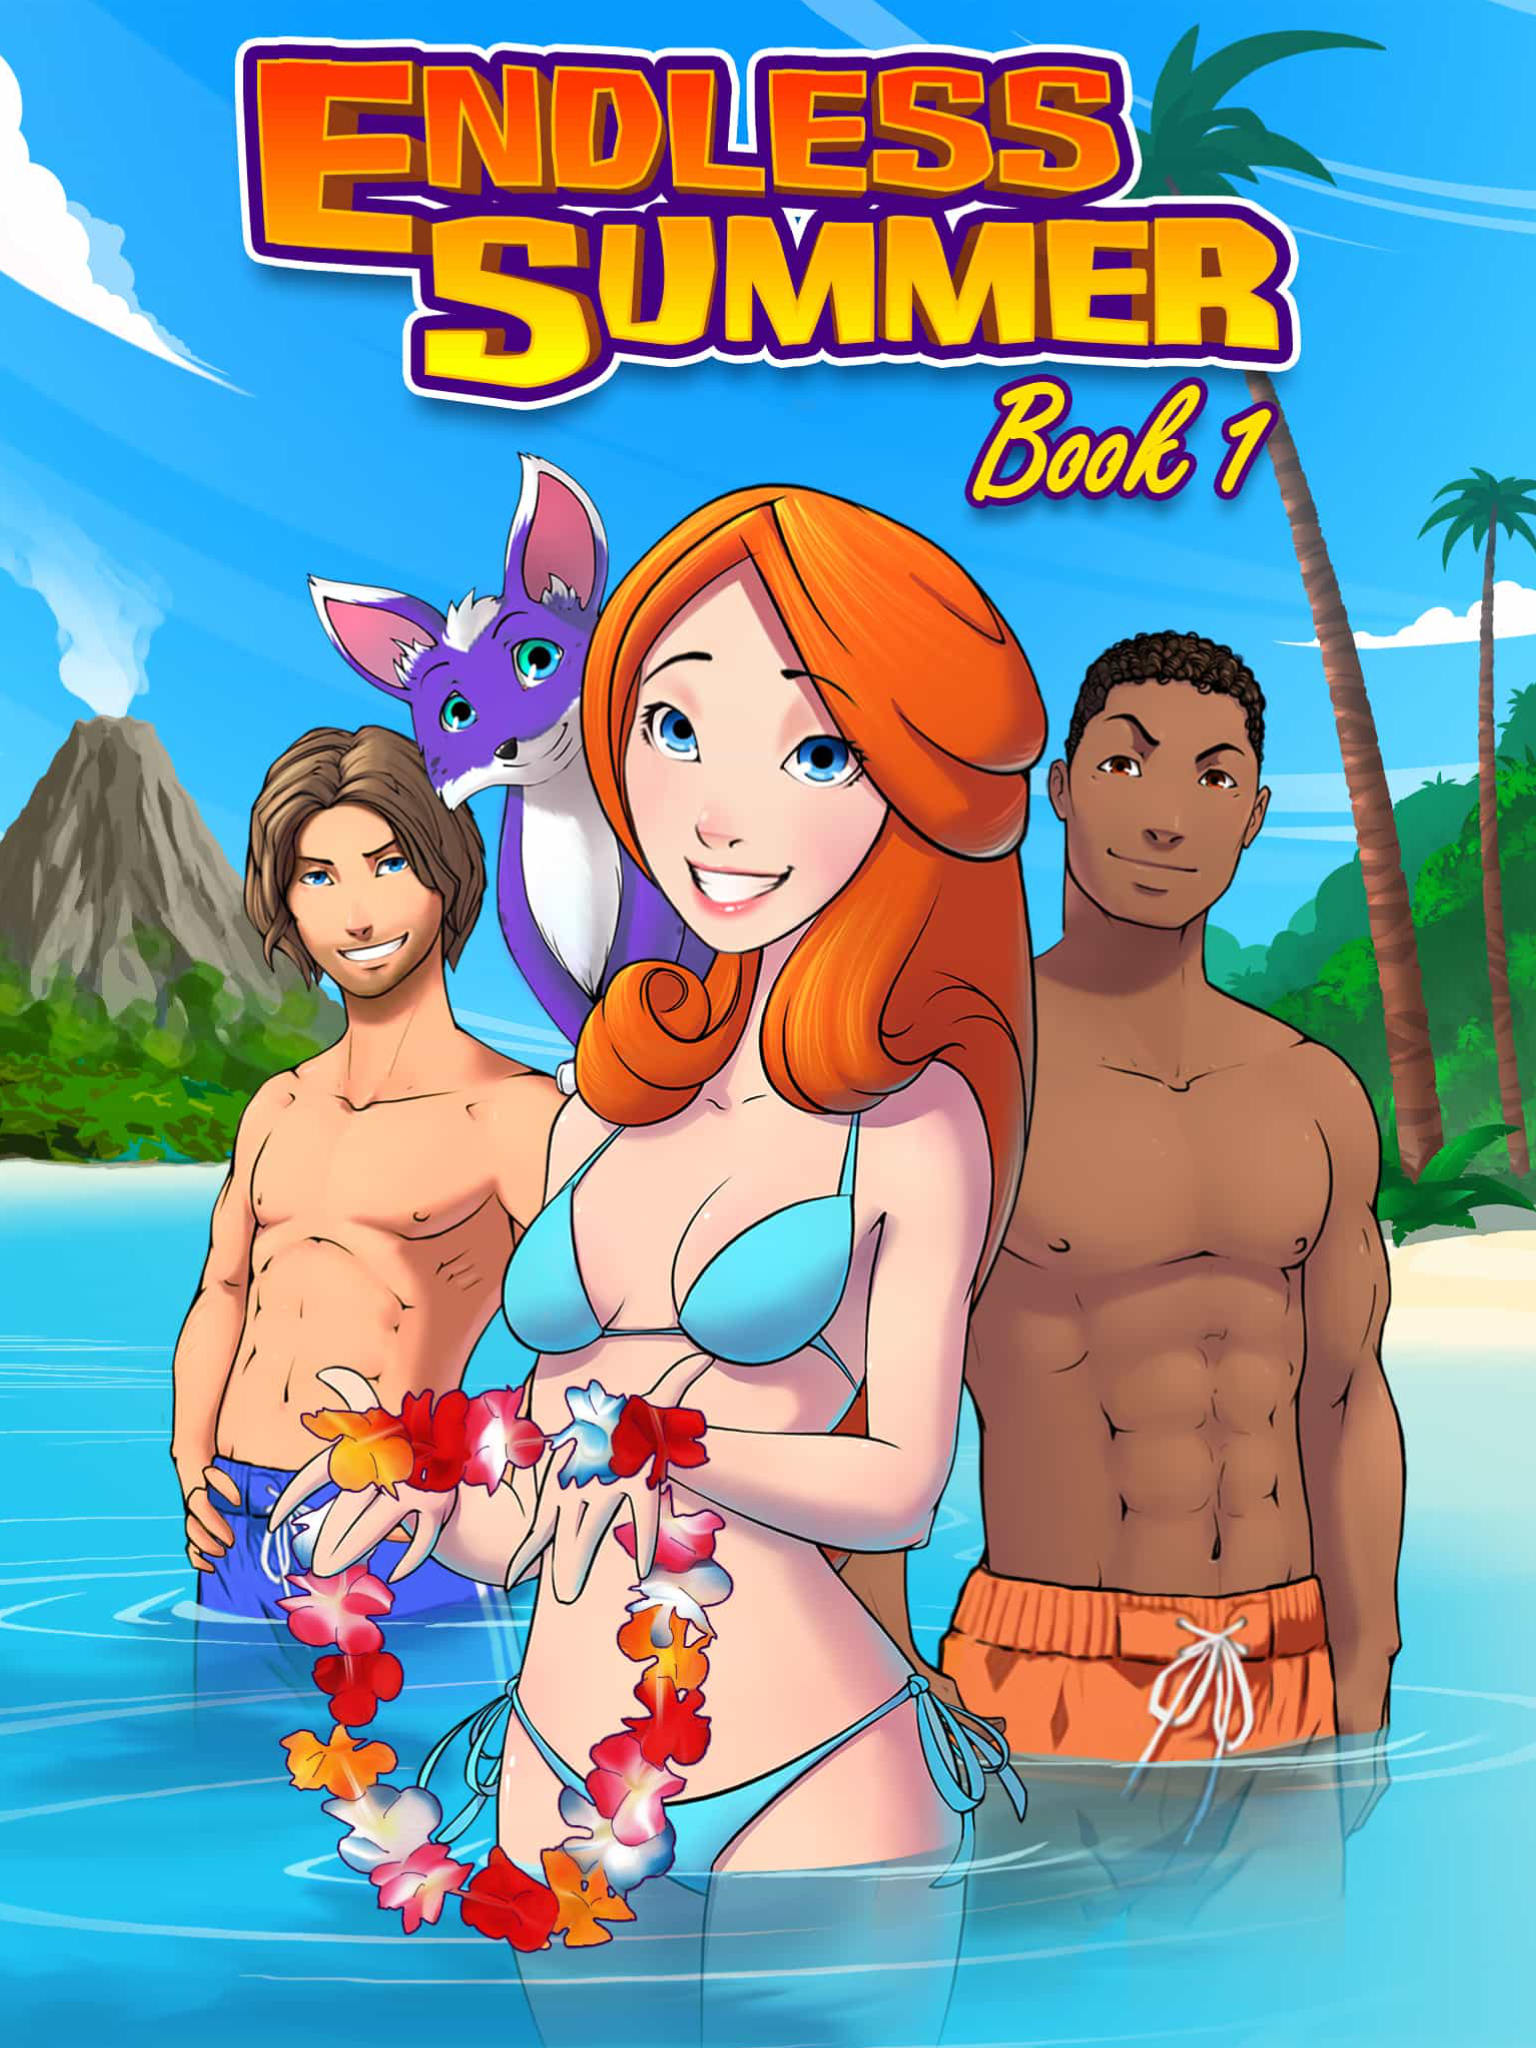 File:Endless Summer, Book 1.png